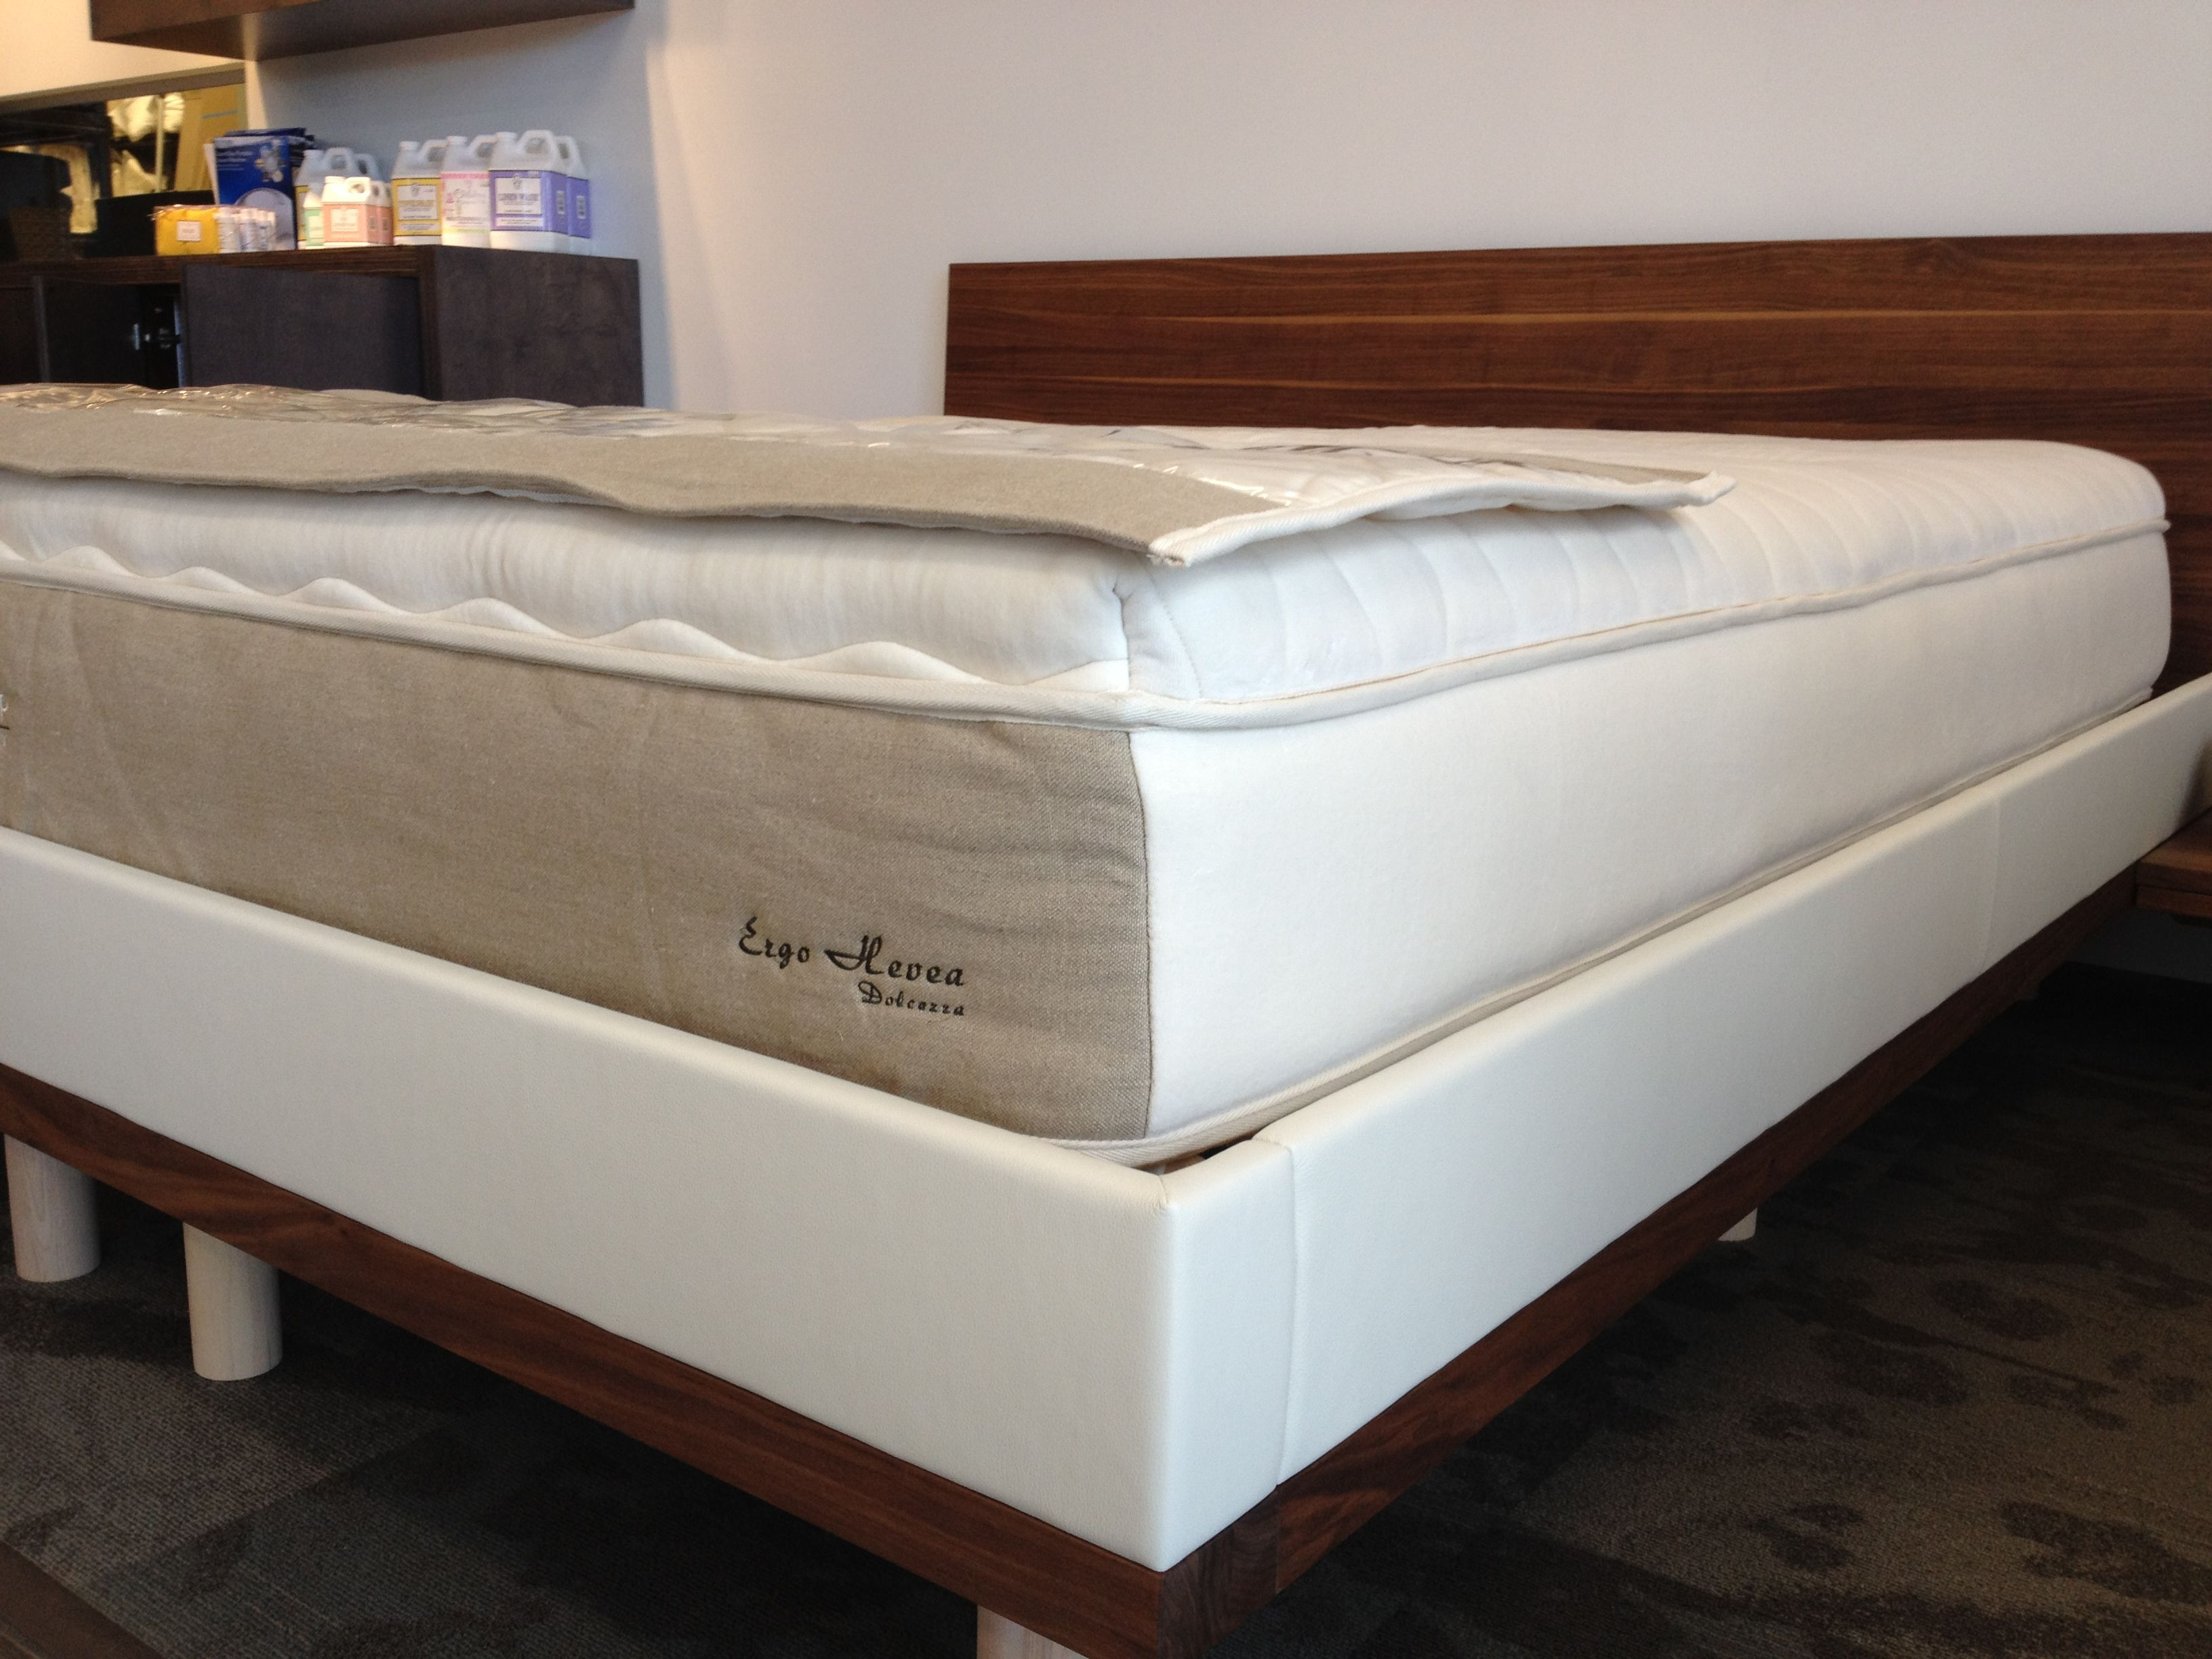 the riletto platform bed w night stands by team 7 on display at the